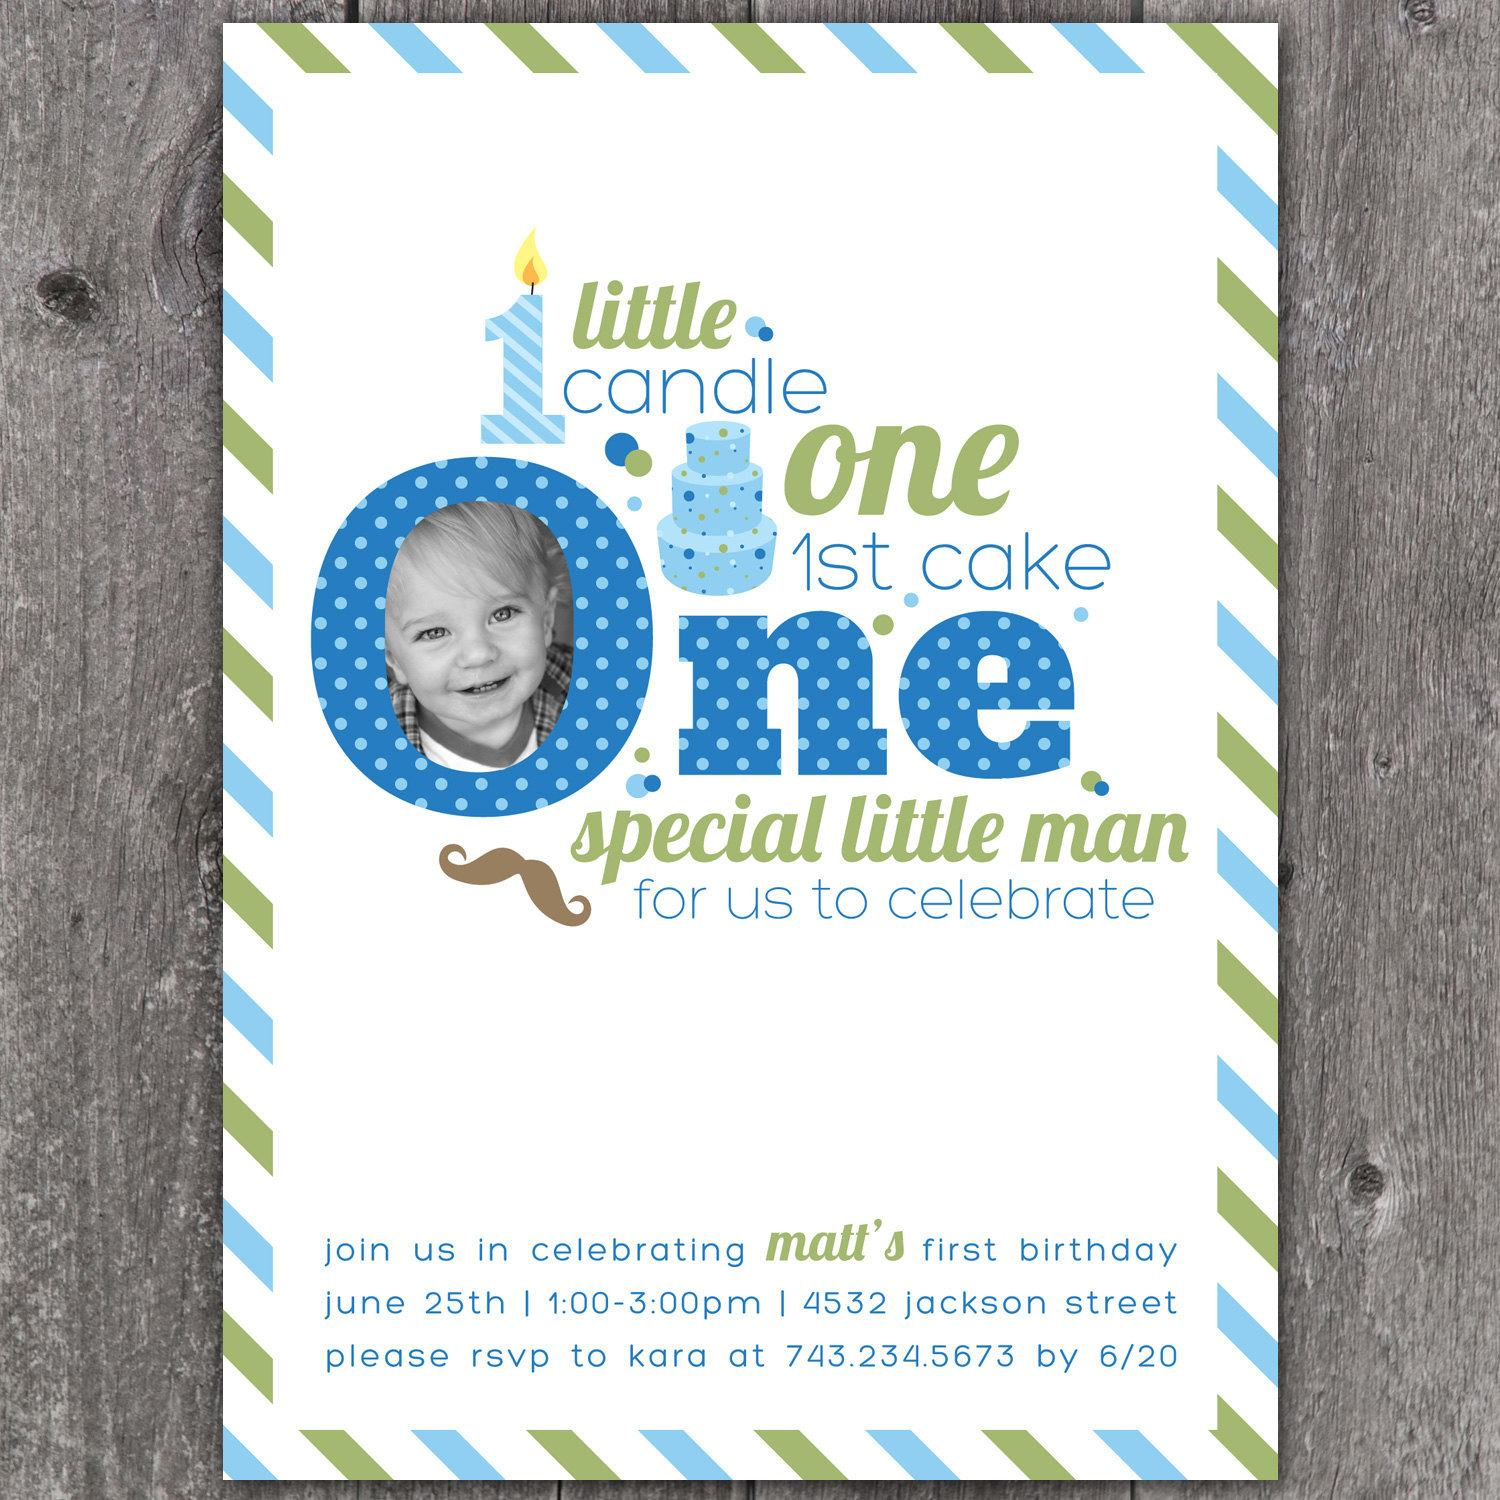 baby first birthday invitation templates free ; 1st-birthday-invitations-templates-free-new-40th-birthday-ideas-baby-first-birthday-invitation-templates-free-of-1st-birthday-invitations-templates-free